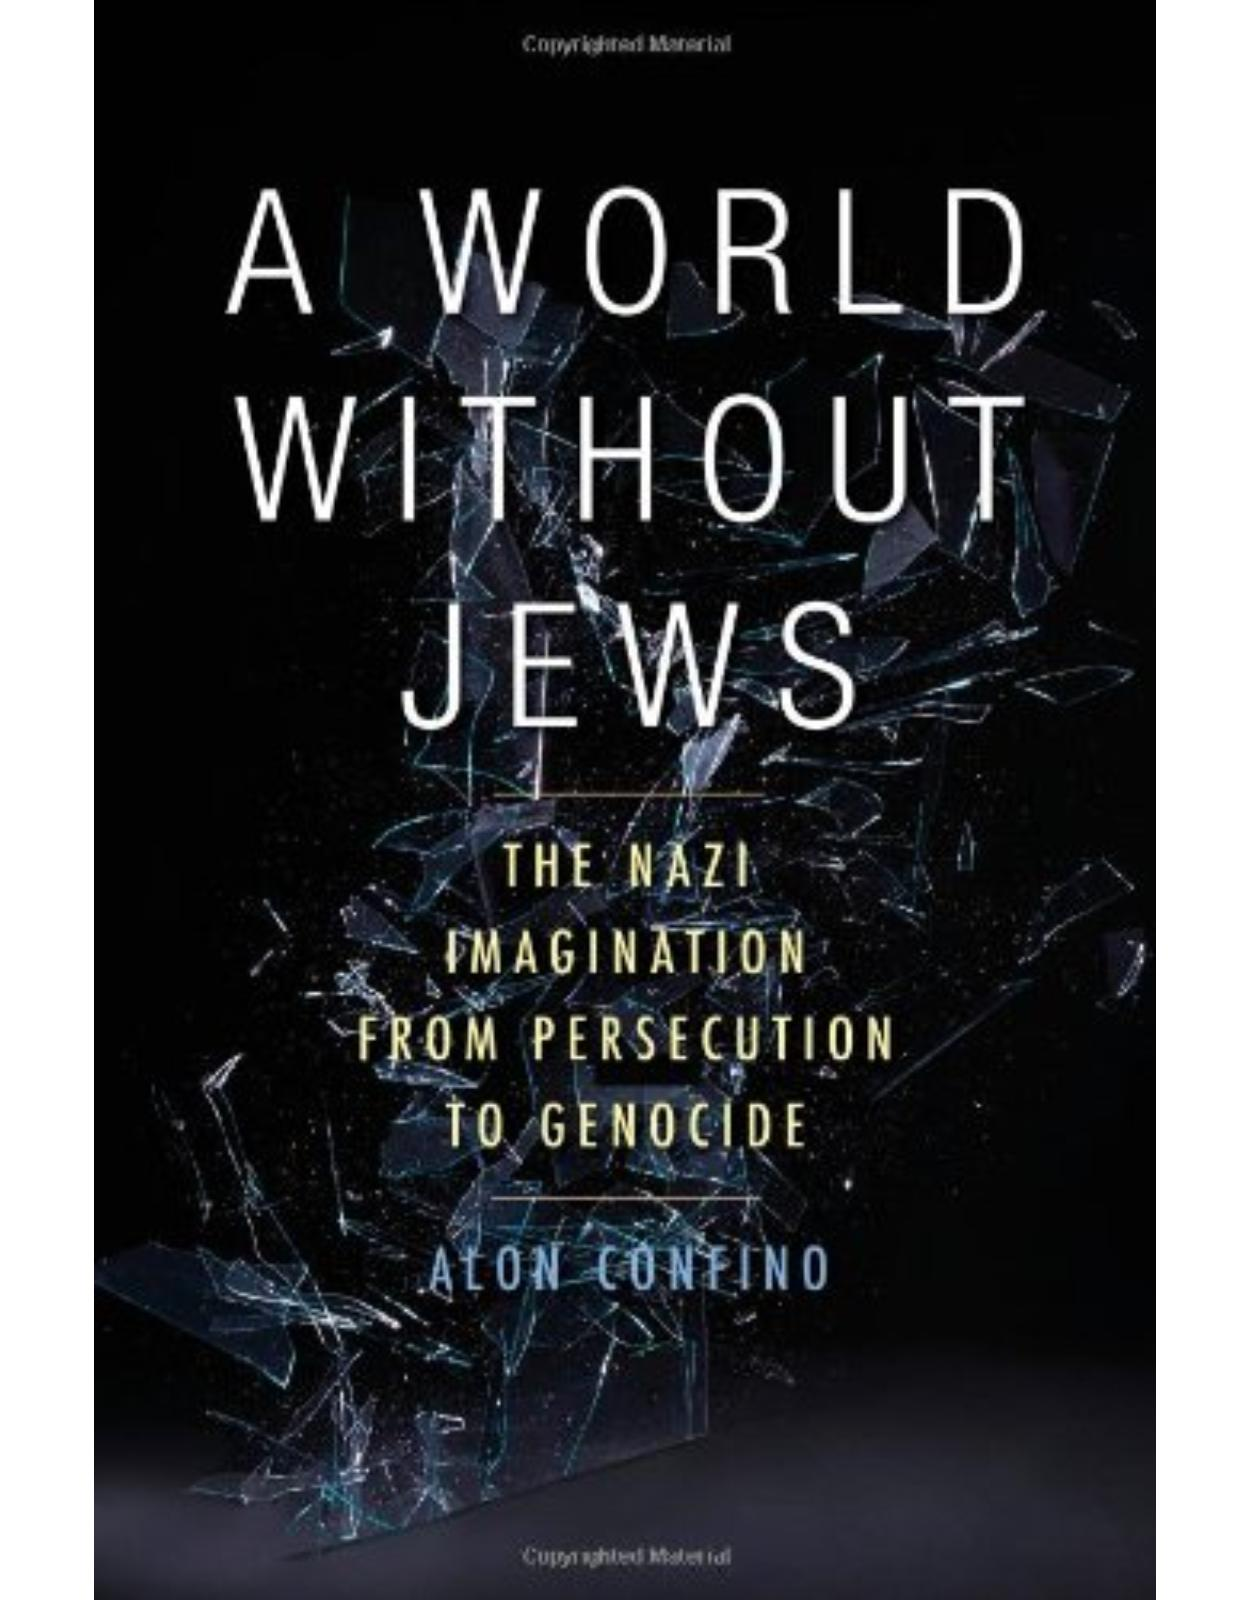 World Without Jews. Nazi Germany, Representations of the Past, and the Holocaust, 1933-1945